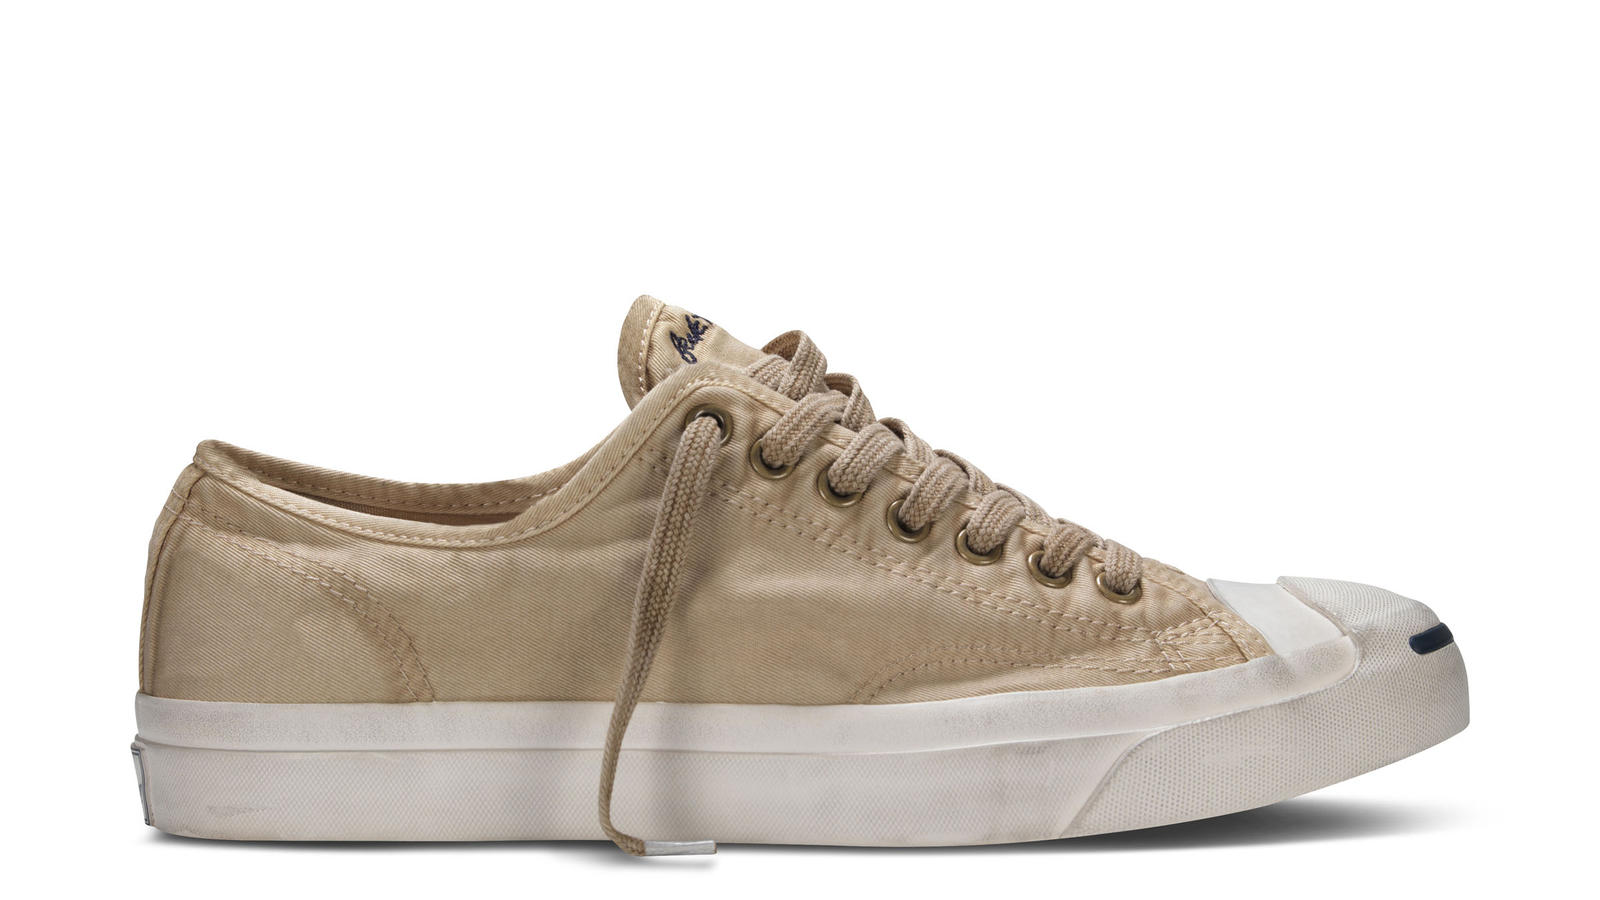 Jack Purcell Safari Original